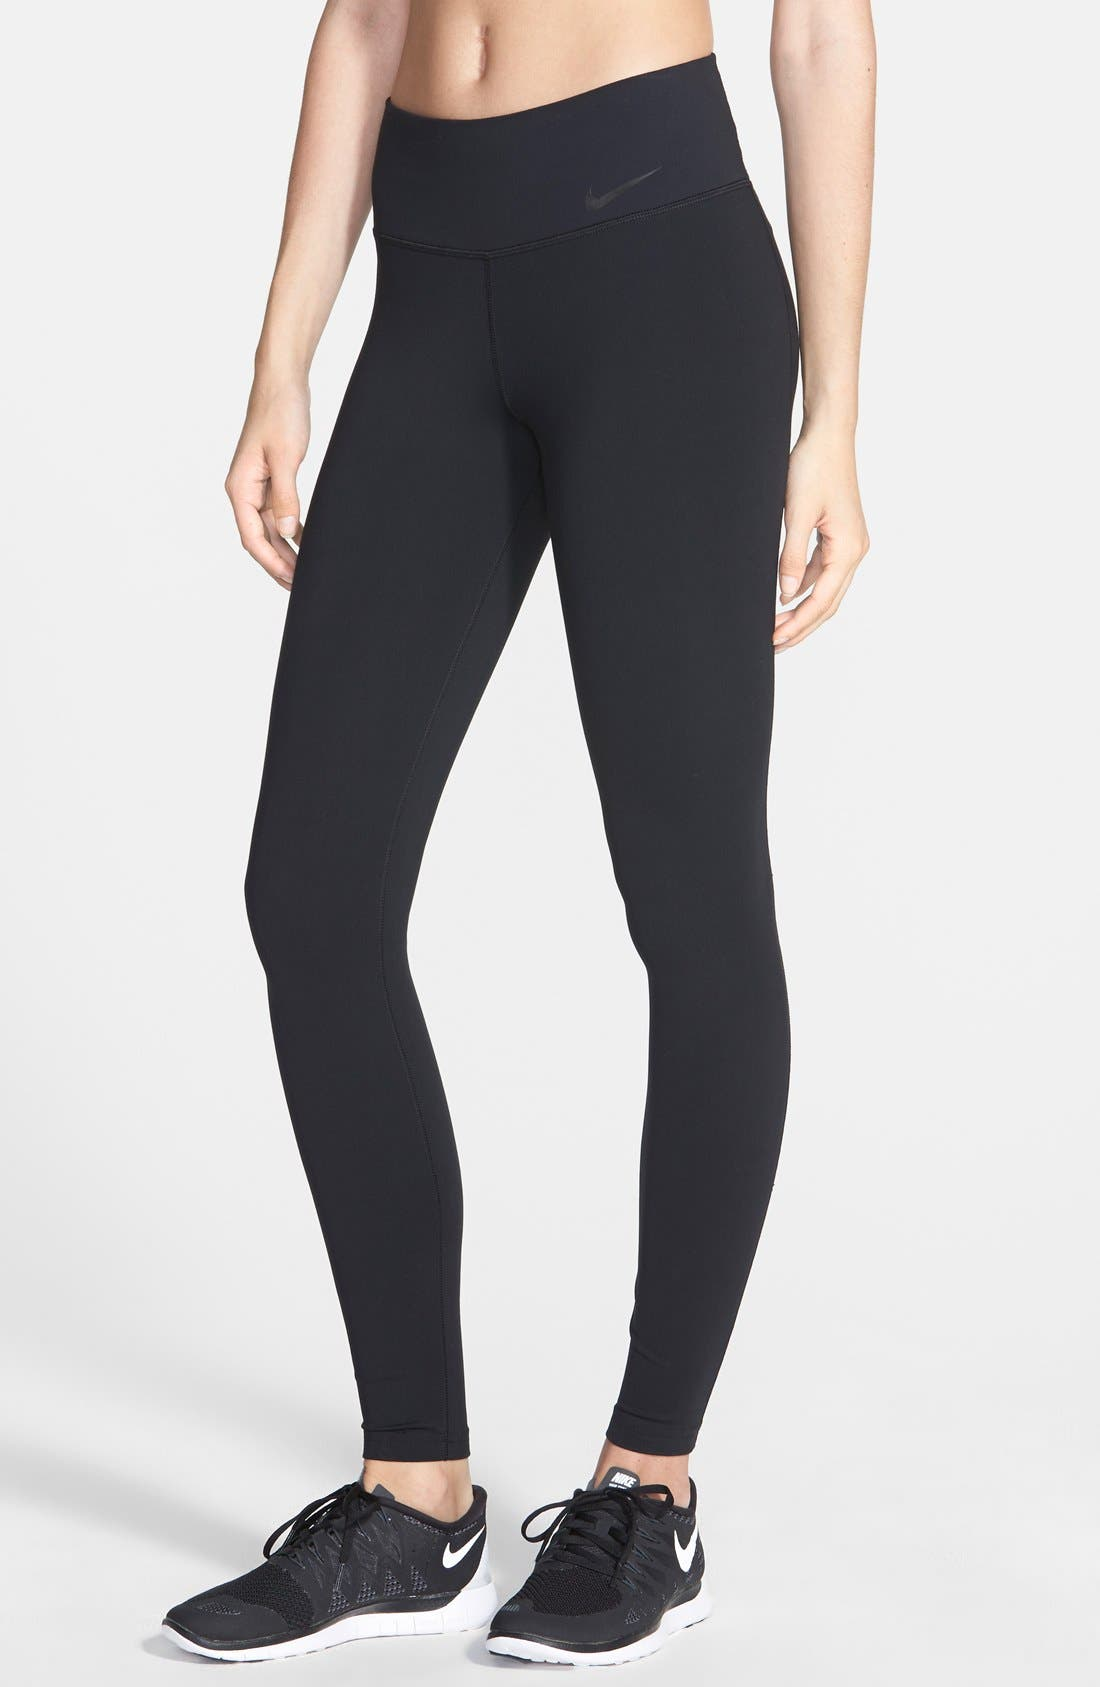 Alternate Image 1 Selected - Nike 'Legendary' Dri-FIT Training Tights